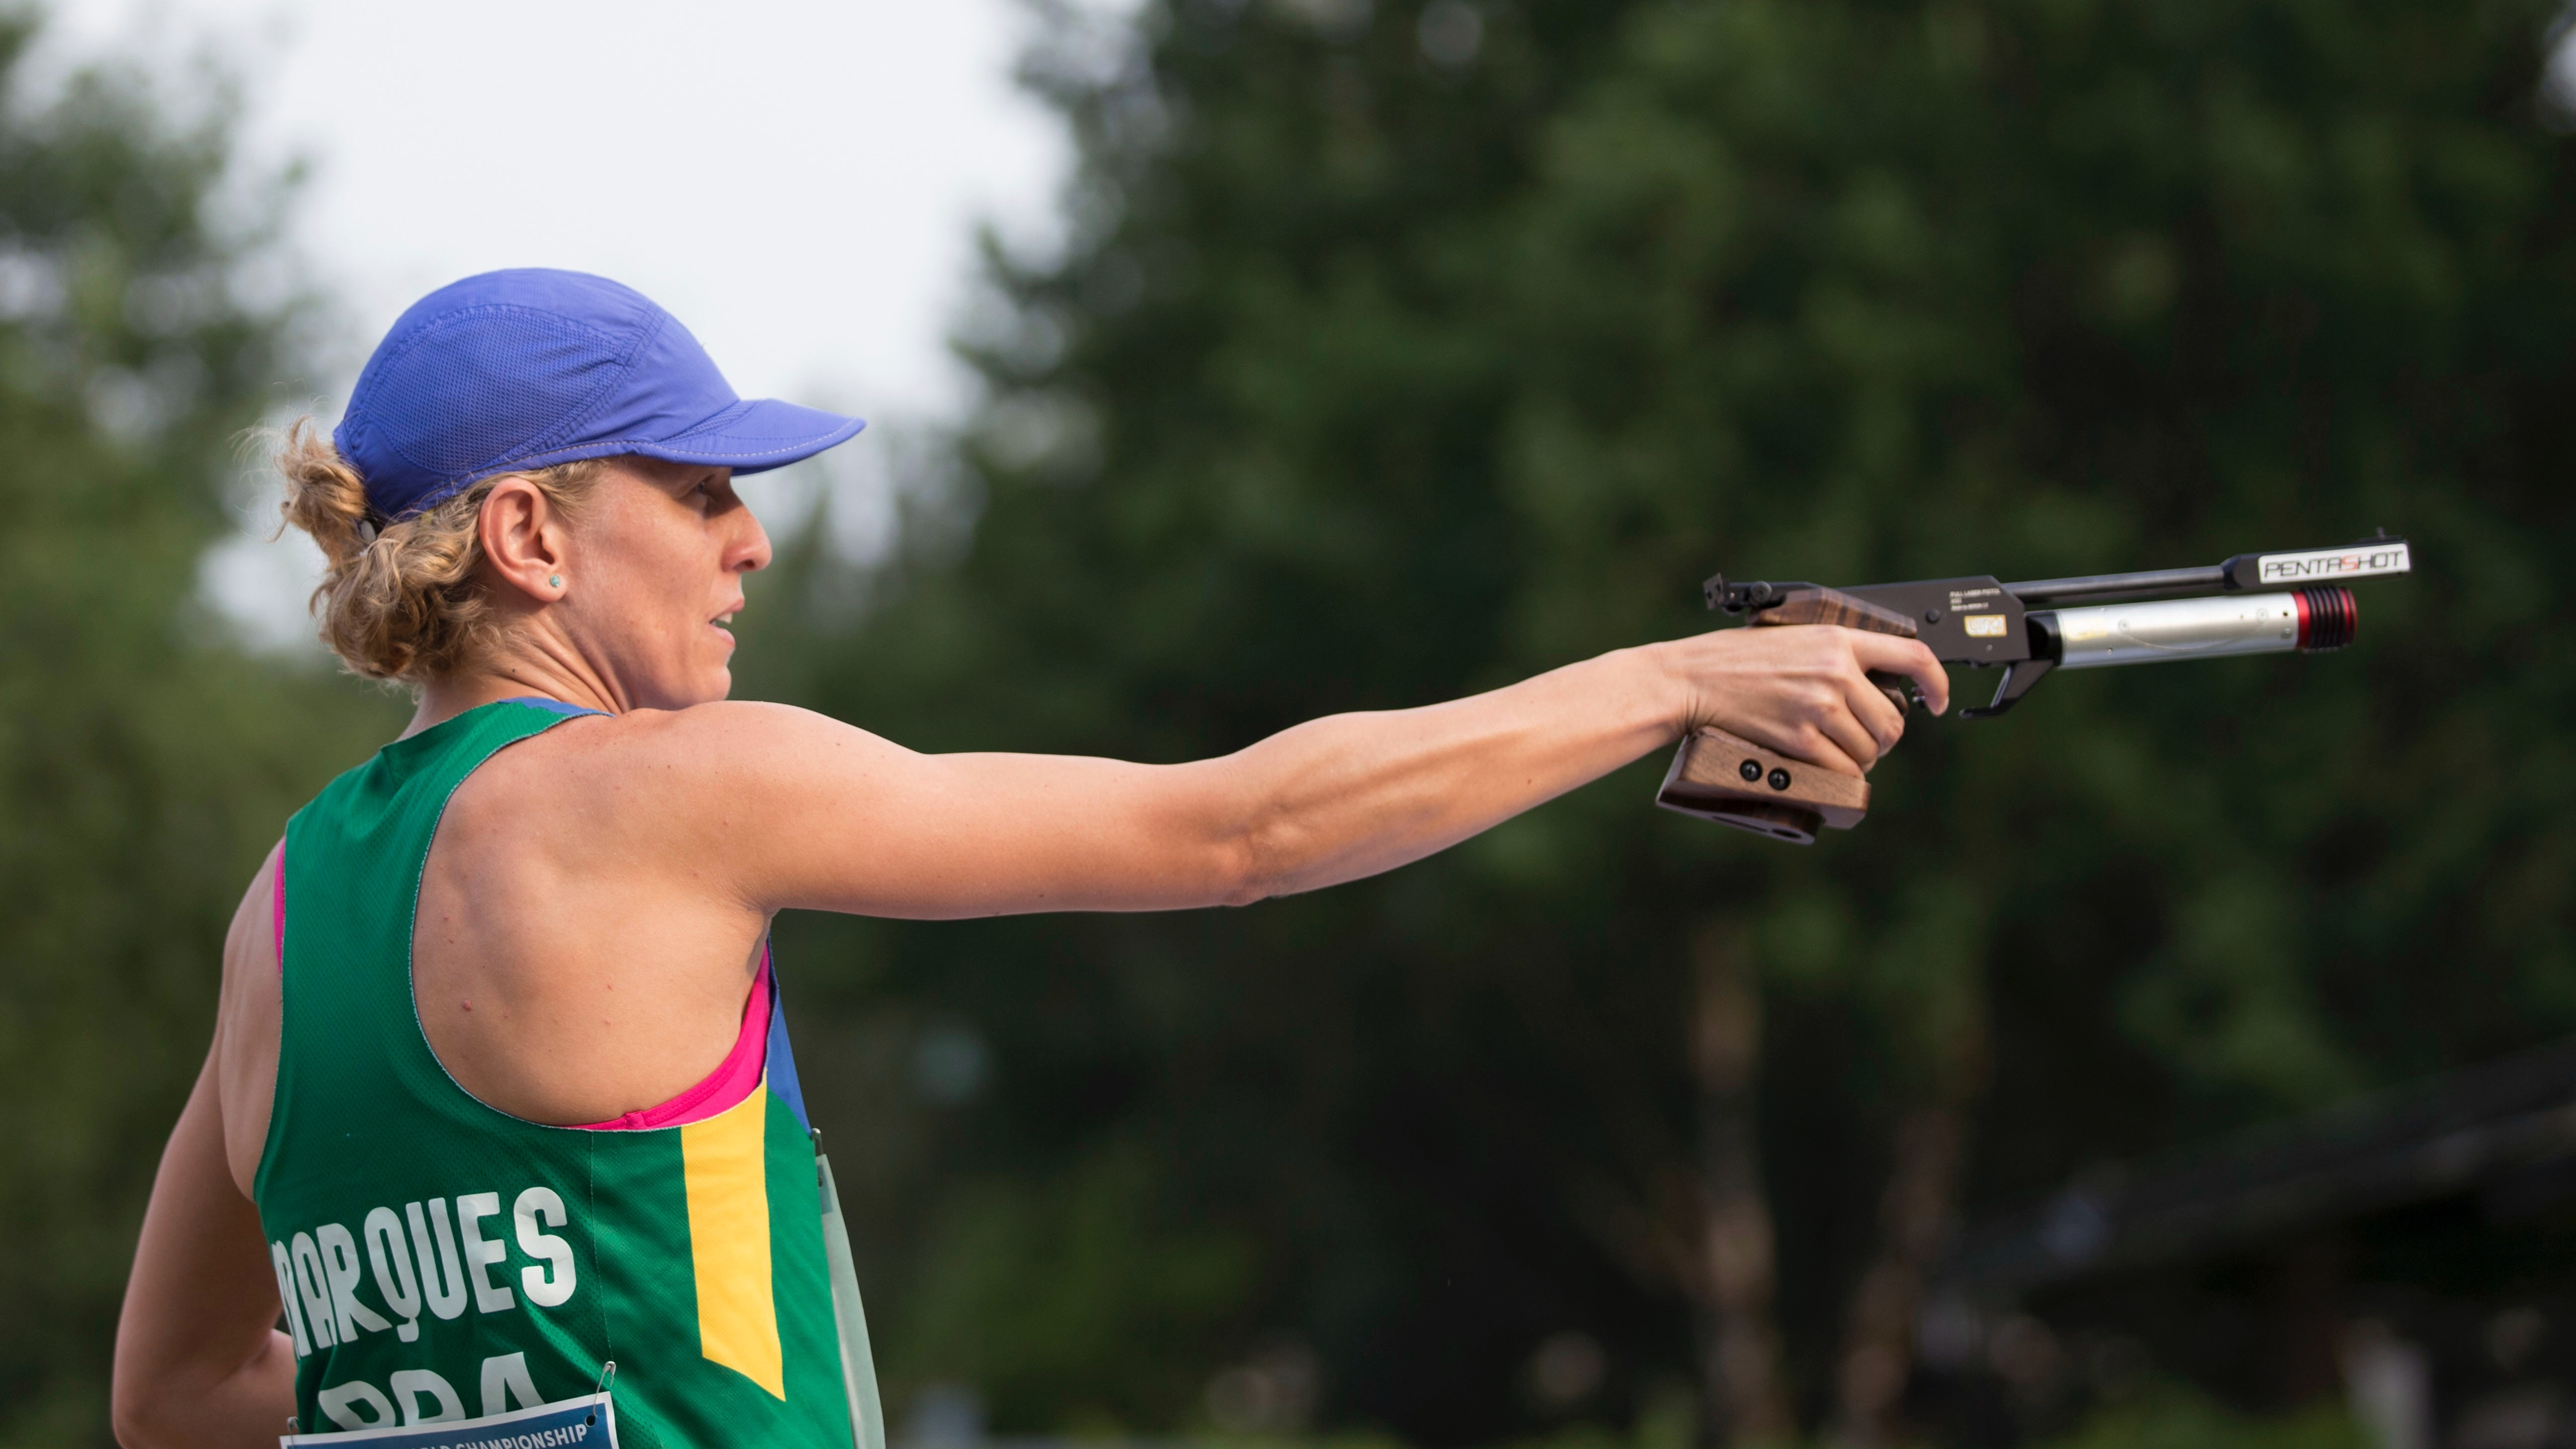 Yane Marques of Brazil shoots during the women's combined competition of the Modern Pentathlon World Championships in Berlin, Germany, Saturday, July 4, 2015. (AP Photo/Axel Schmidt)